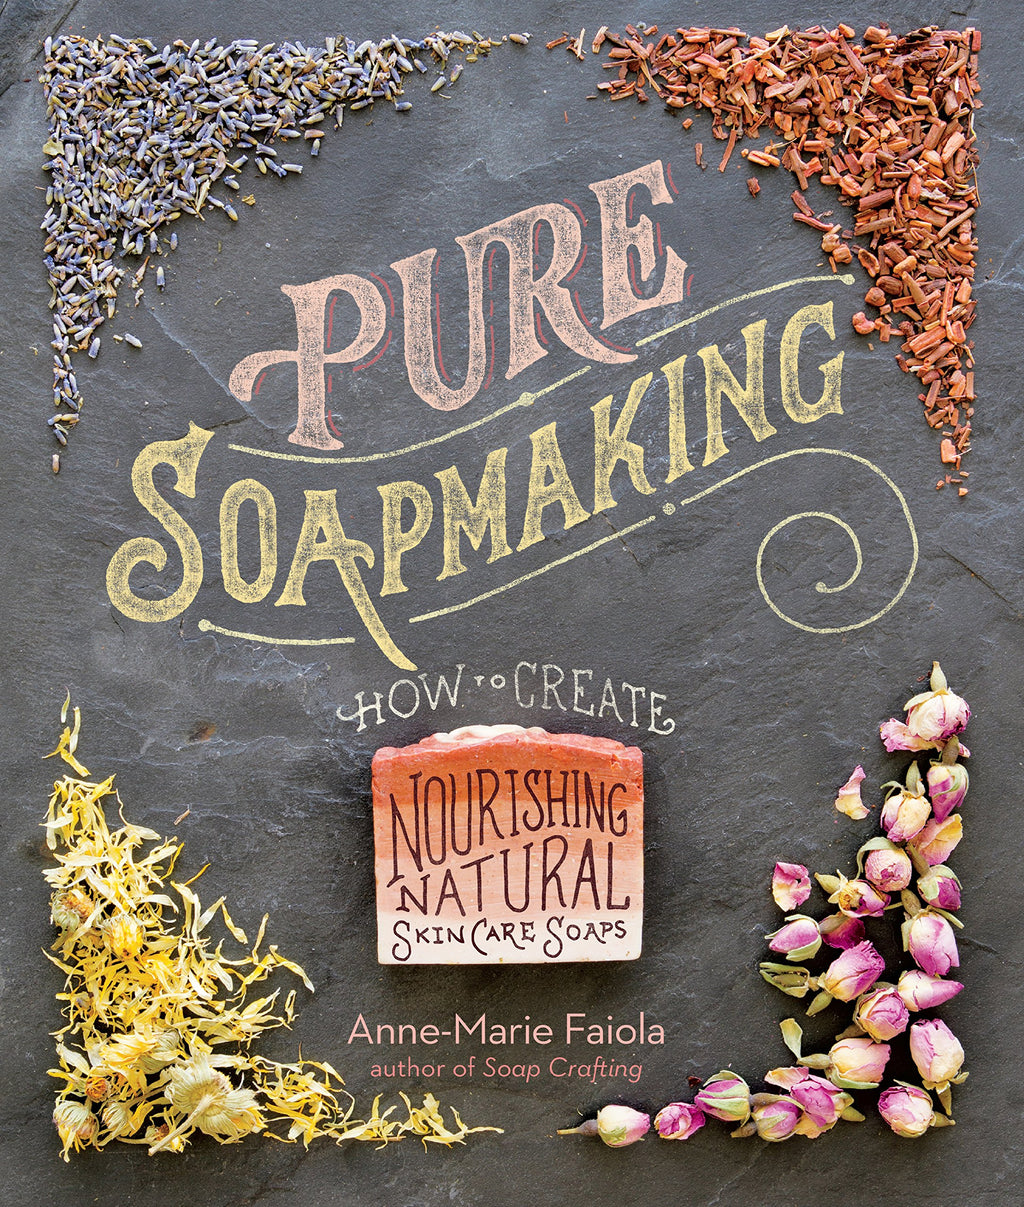 Pure Soapmaking by Ann-Marie Faiola